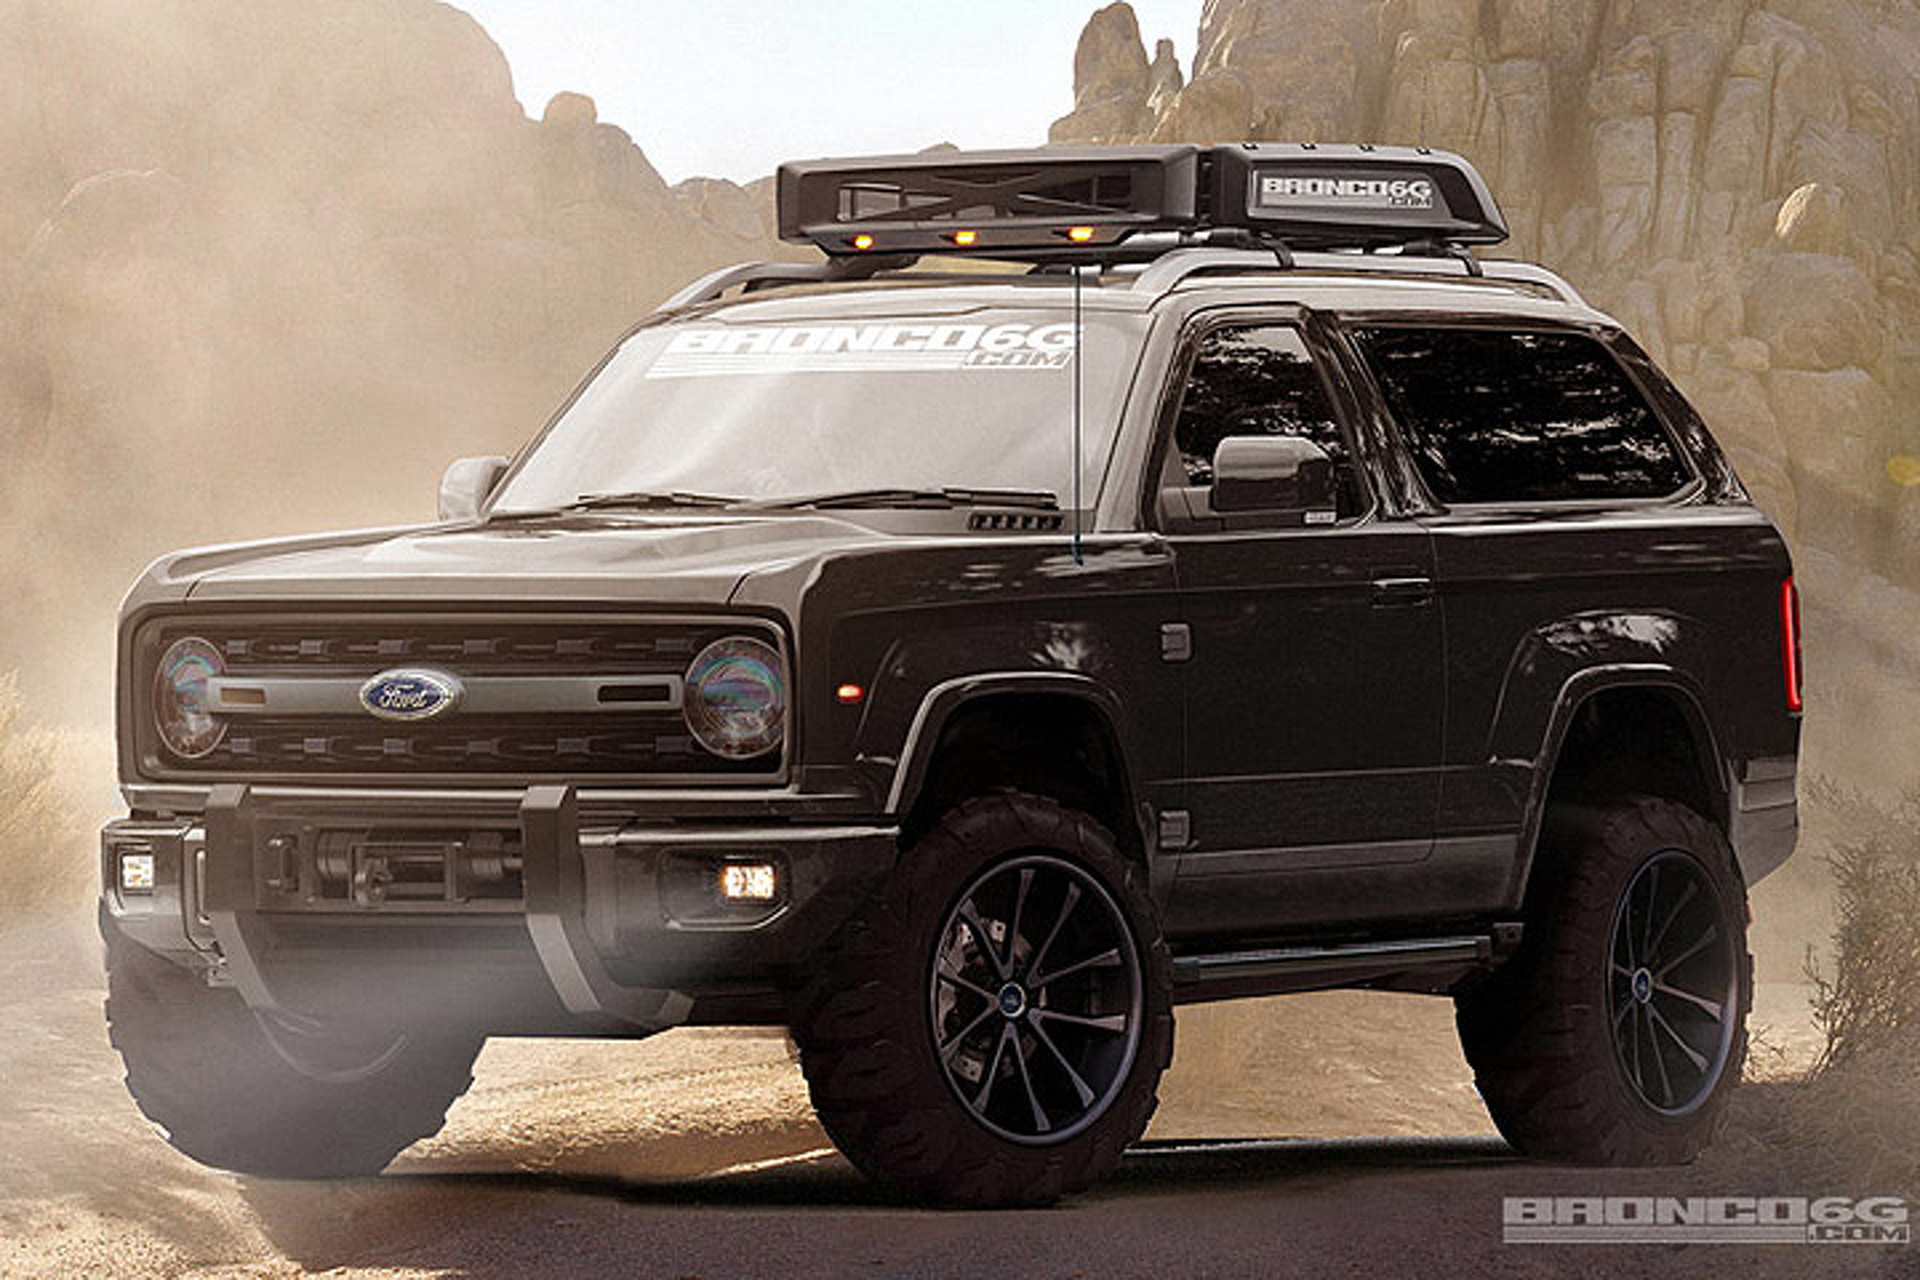 Let's Hope a New Ford Bronco Really Looks This Mean